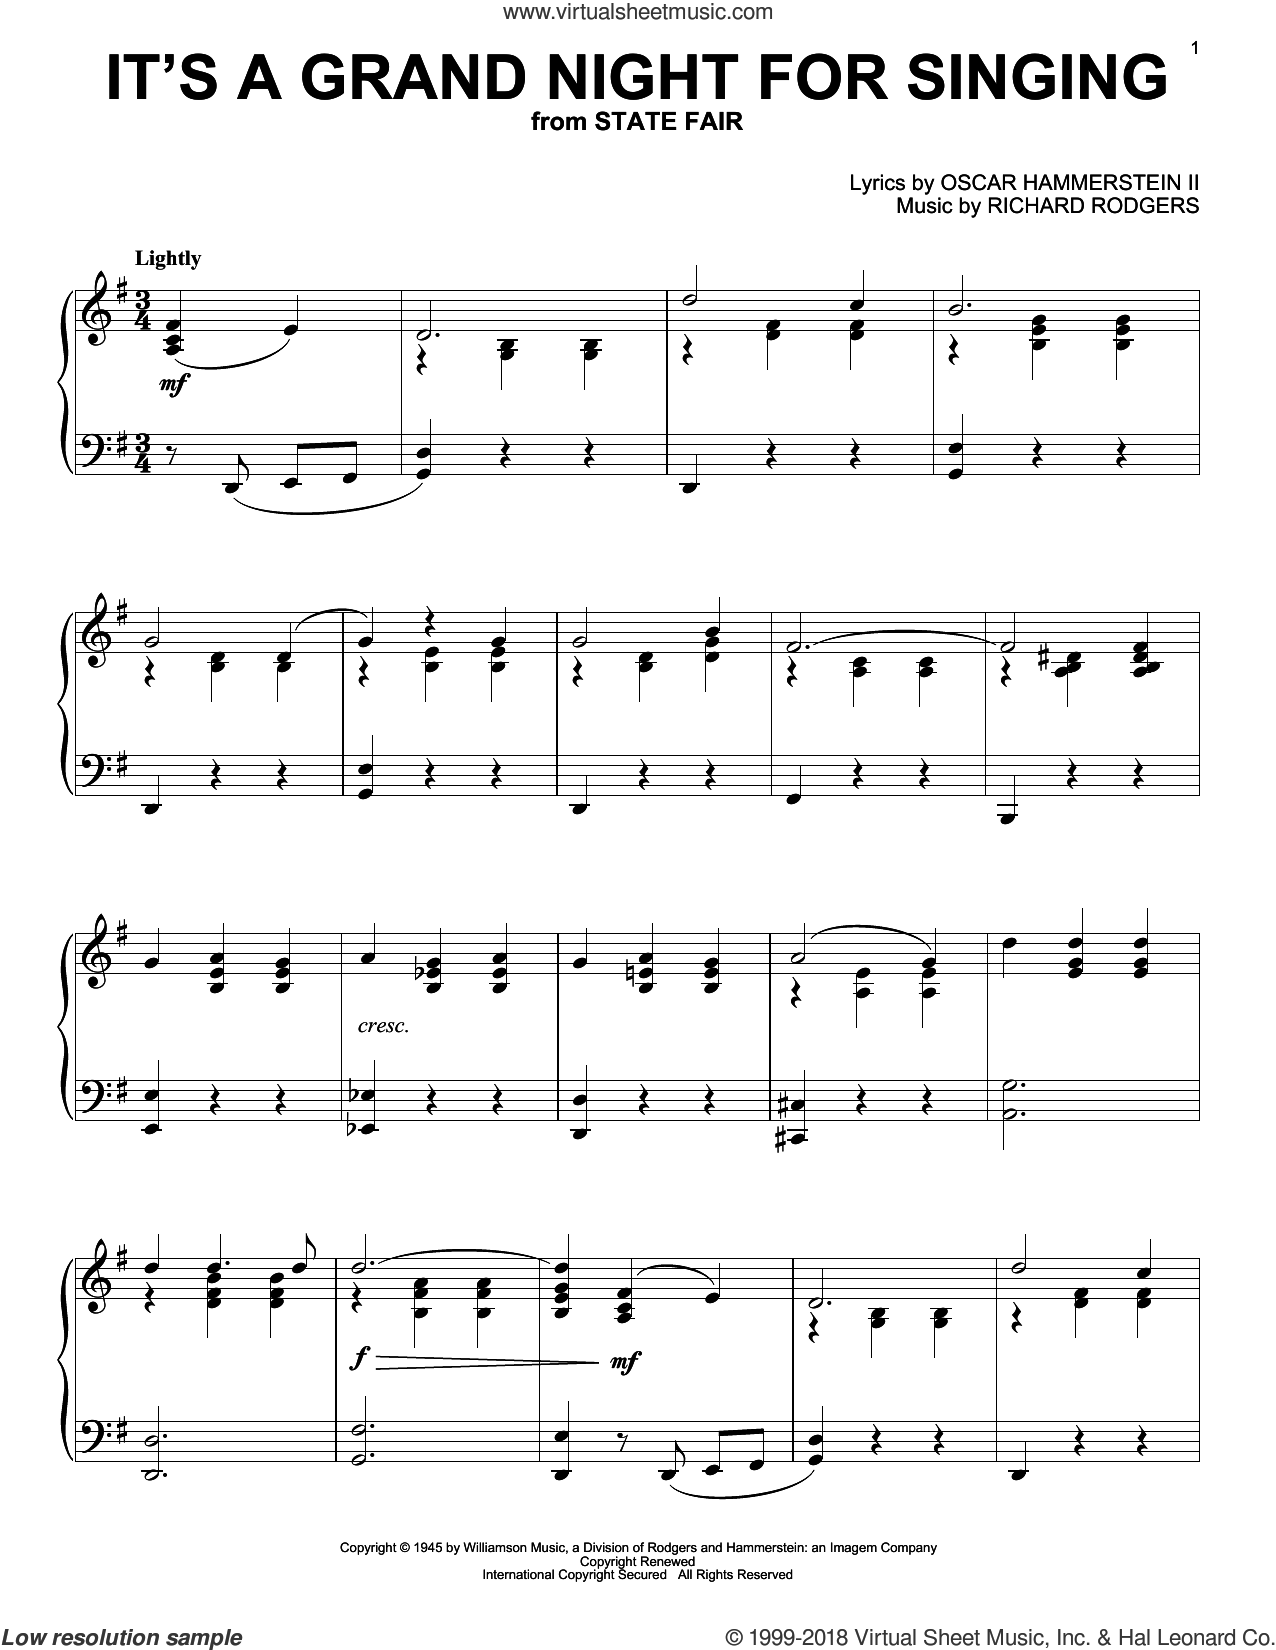 It's A Grand Night For Singing sheet music for piano solo by Rodgers & Hammerstein, Oscar II Hammerstein and Richard Rodgers, intermediate skill level